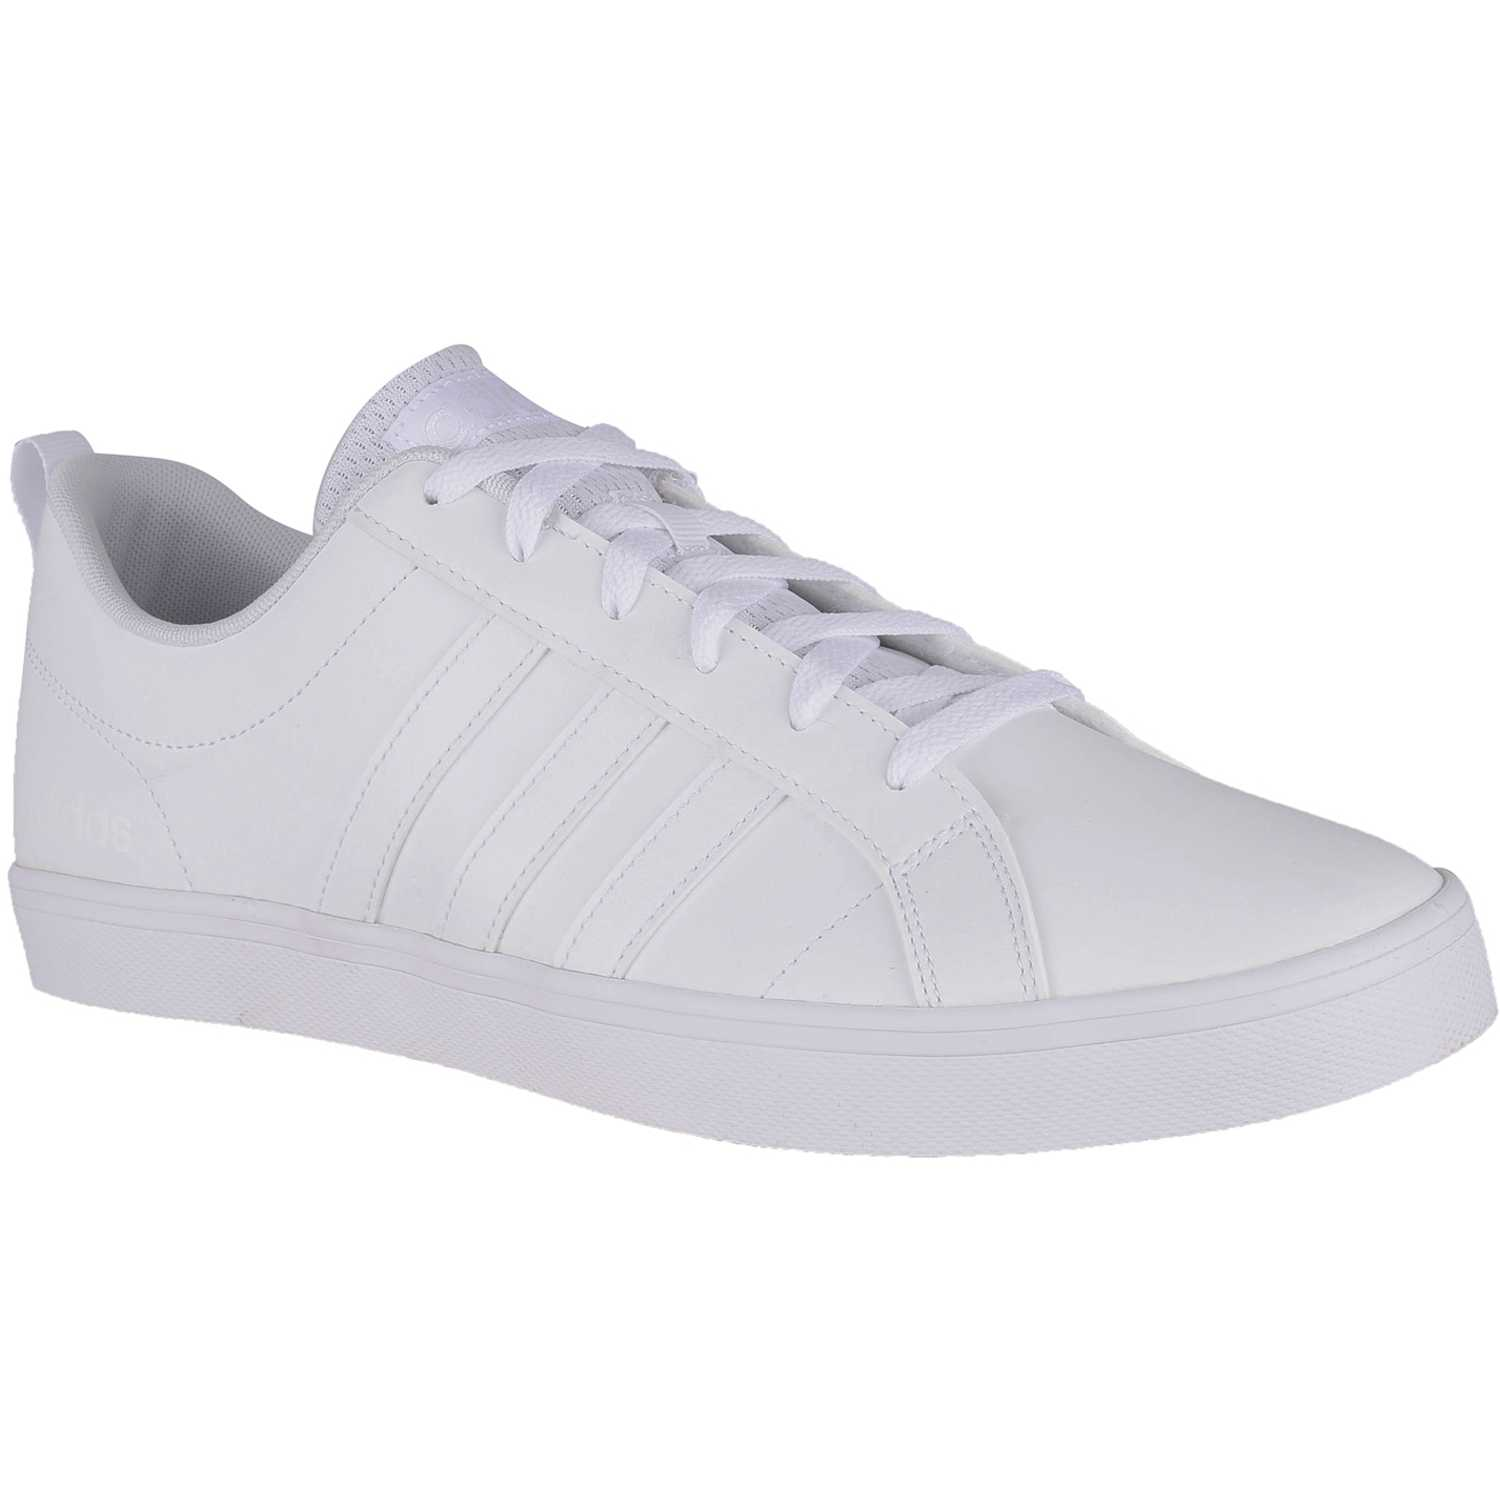 Adidas VS PACE Blanco Hombres